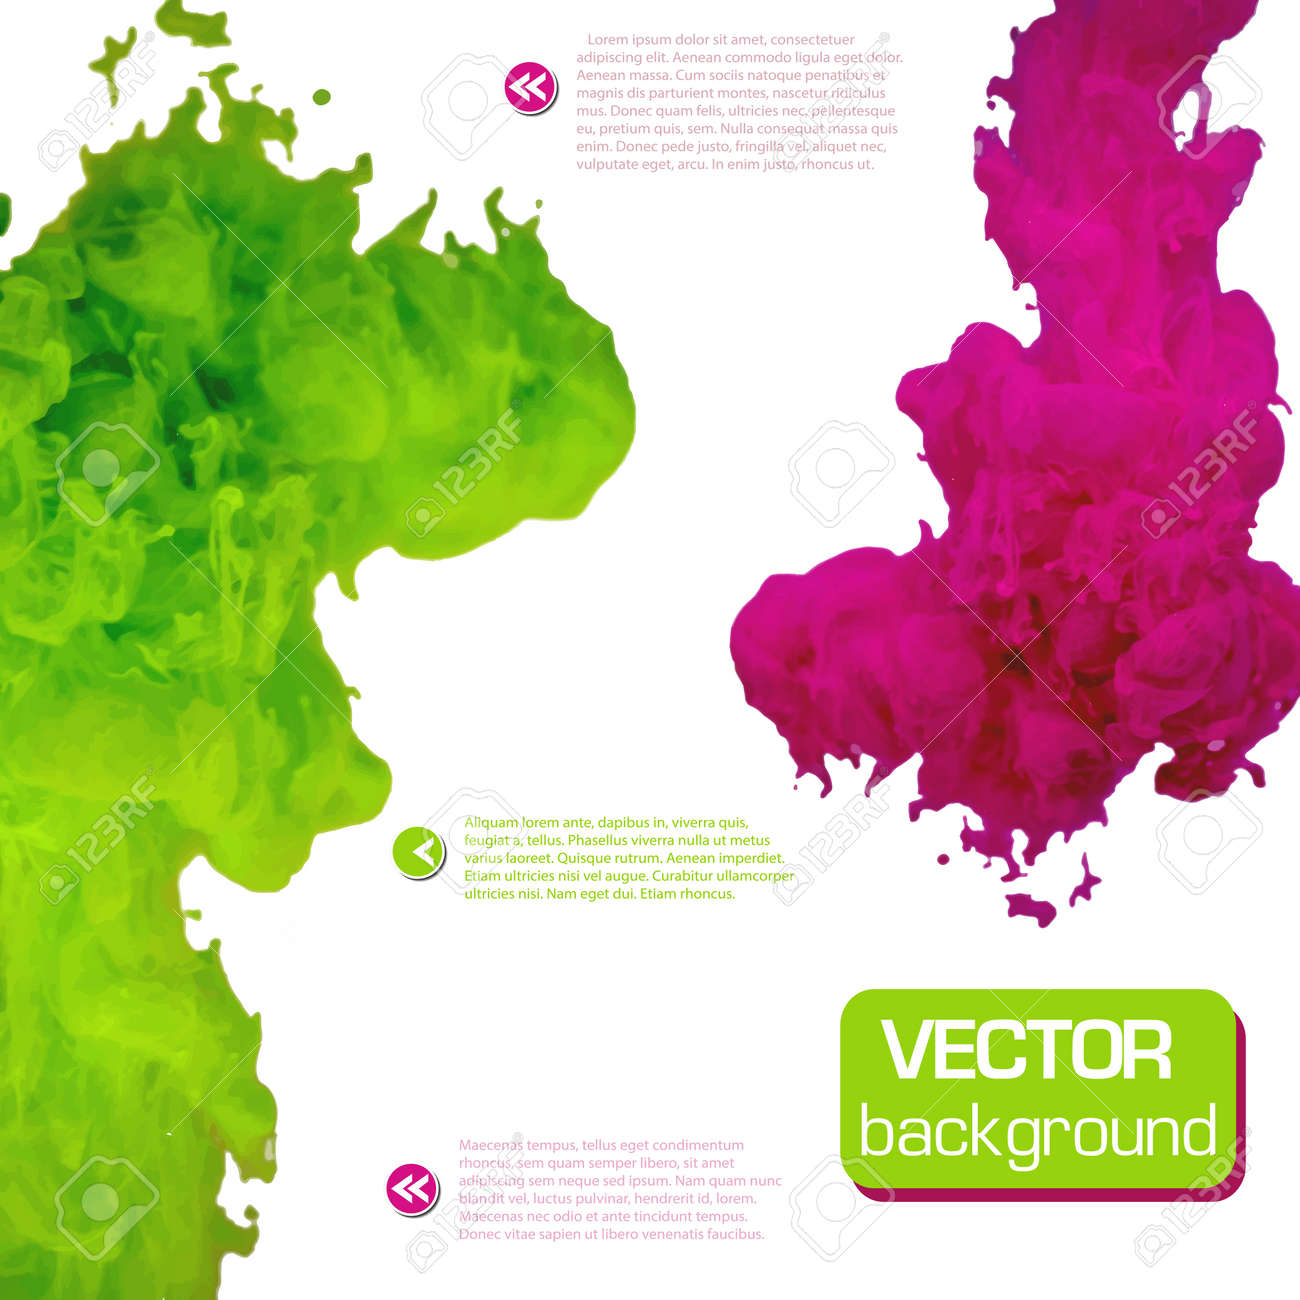 Vector ink swirling in water. Background vector illustration - 31190678